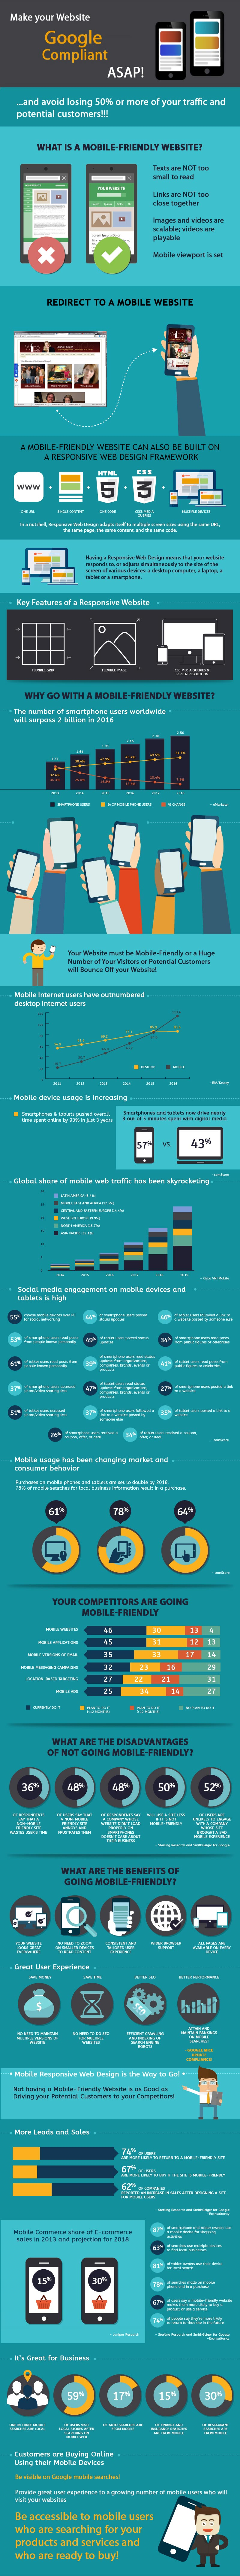 mobile-app-infographic